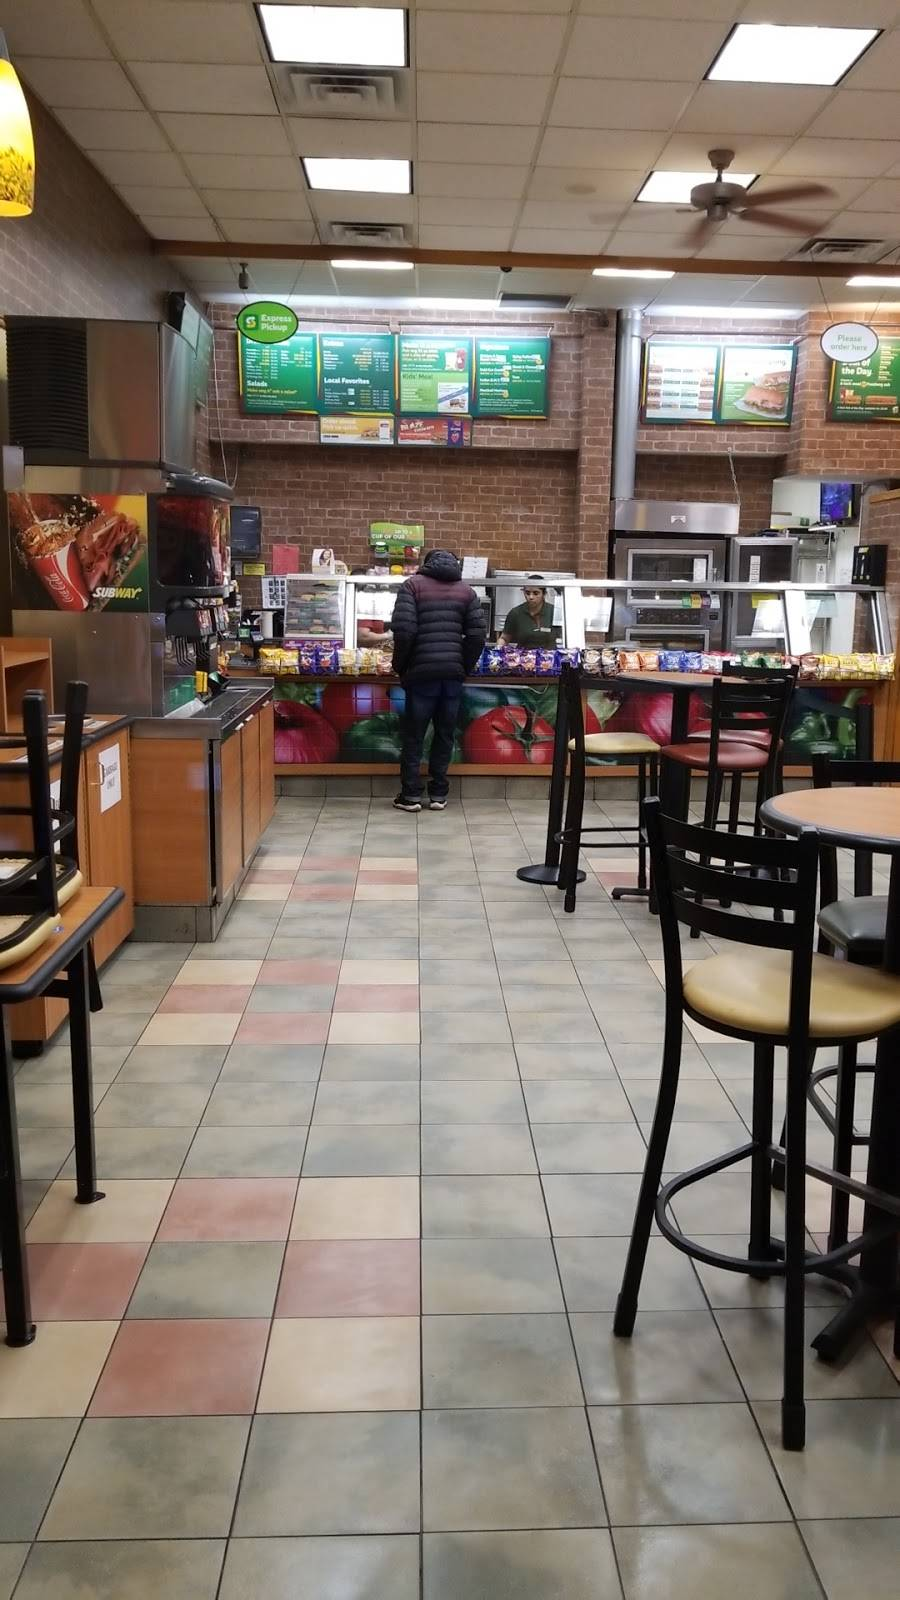 Subway Restaurants | restaurant | 1842 E New York Ave, Brooklyn, NY 11207, USA | 3477898868 OR +1 347-789-8868